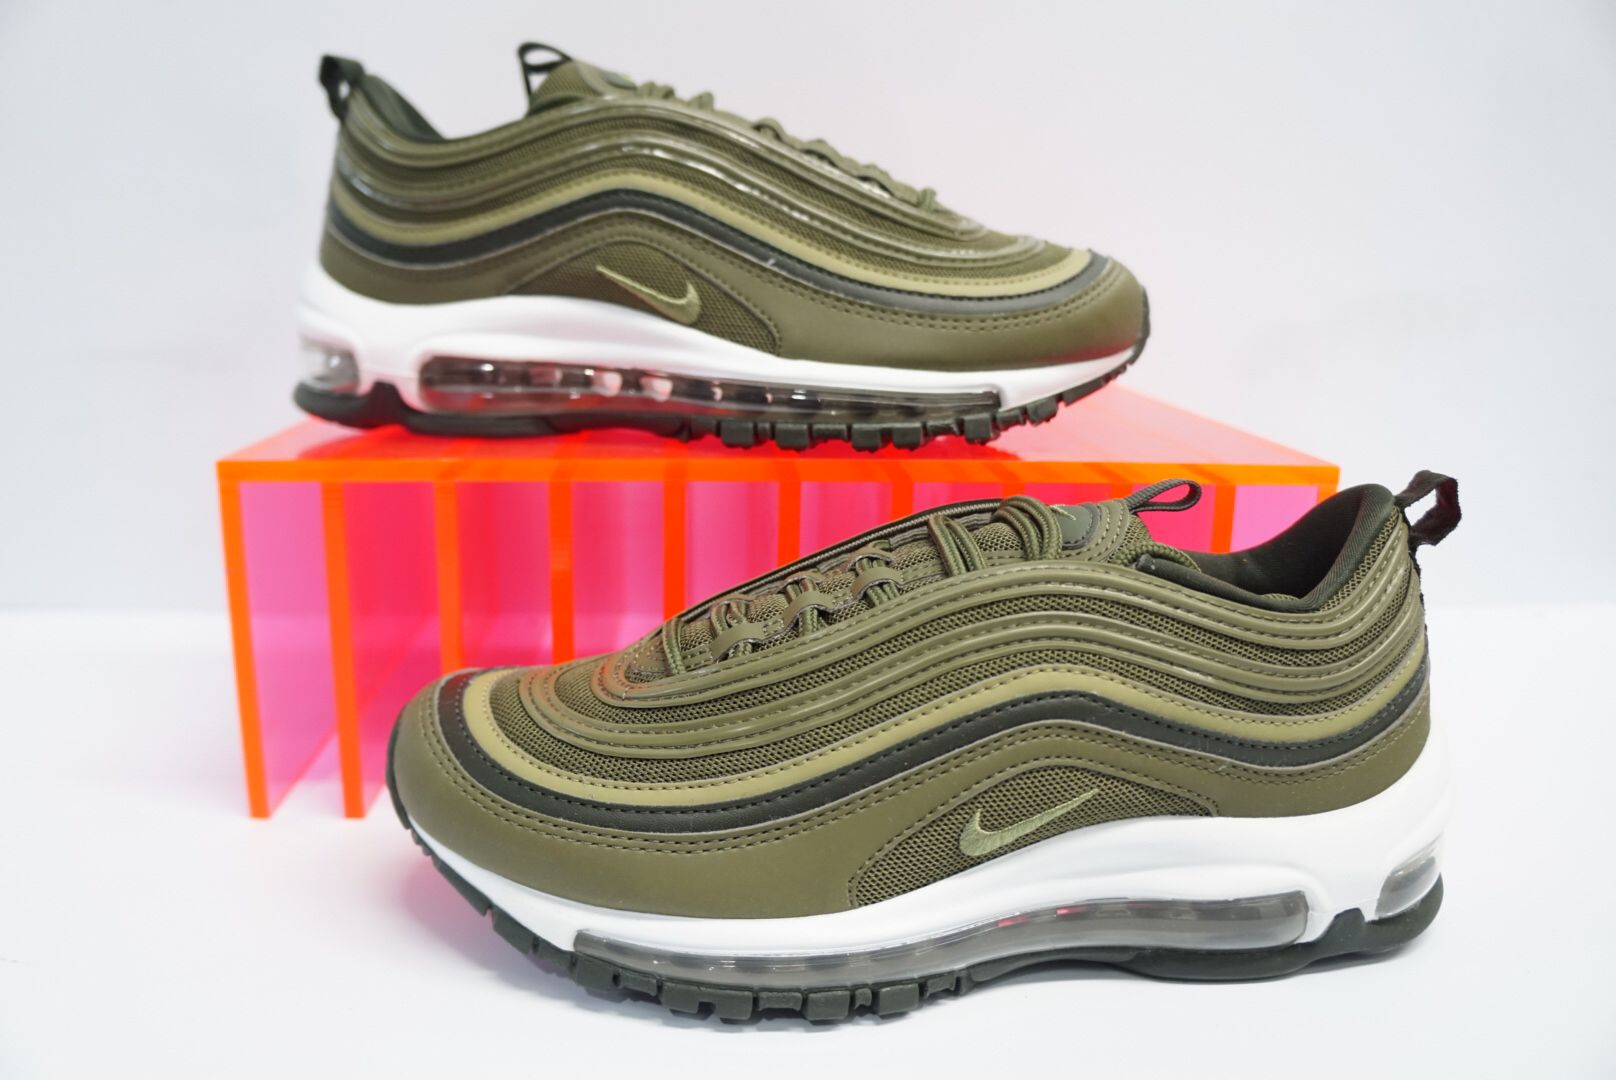 Olive Green Nike Air max 97 (women's) | Sneakers fashion ...